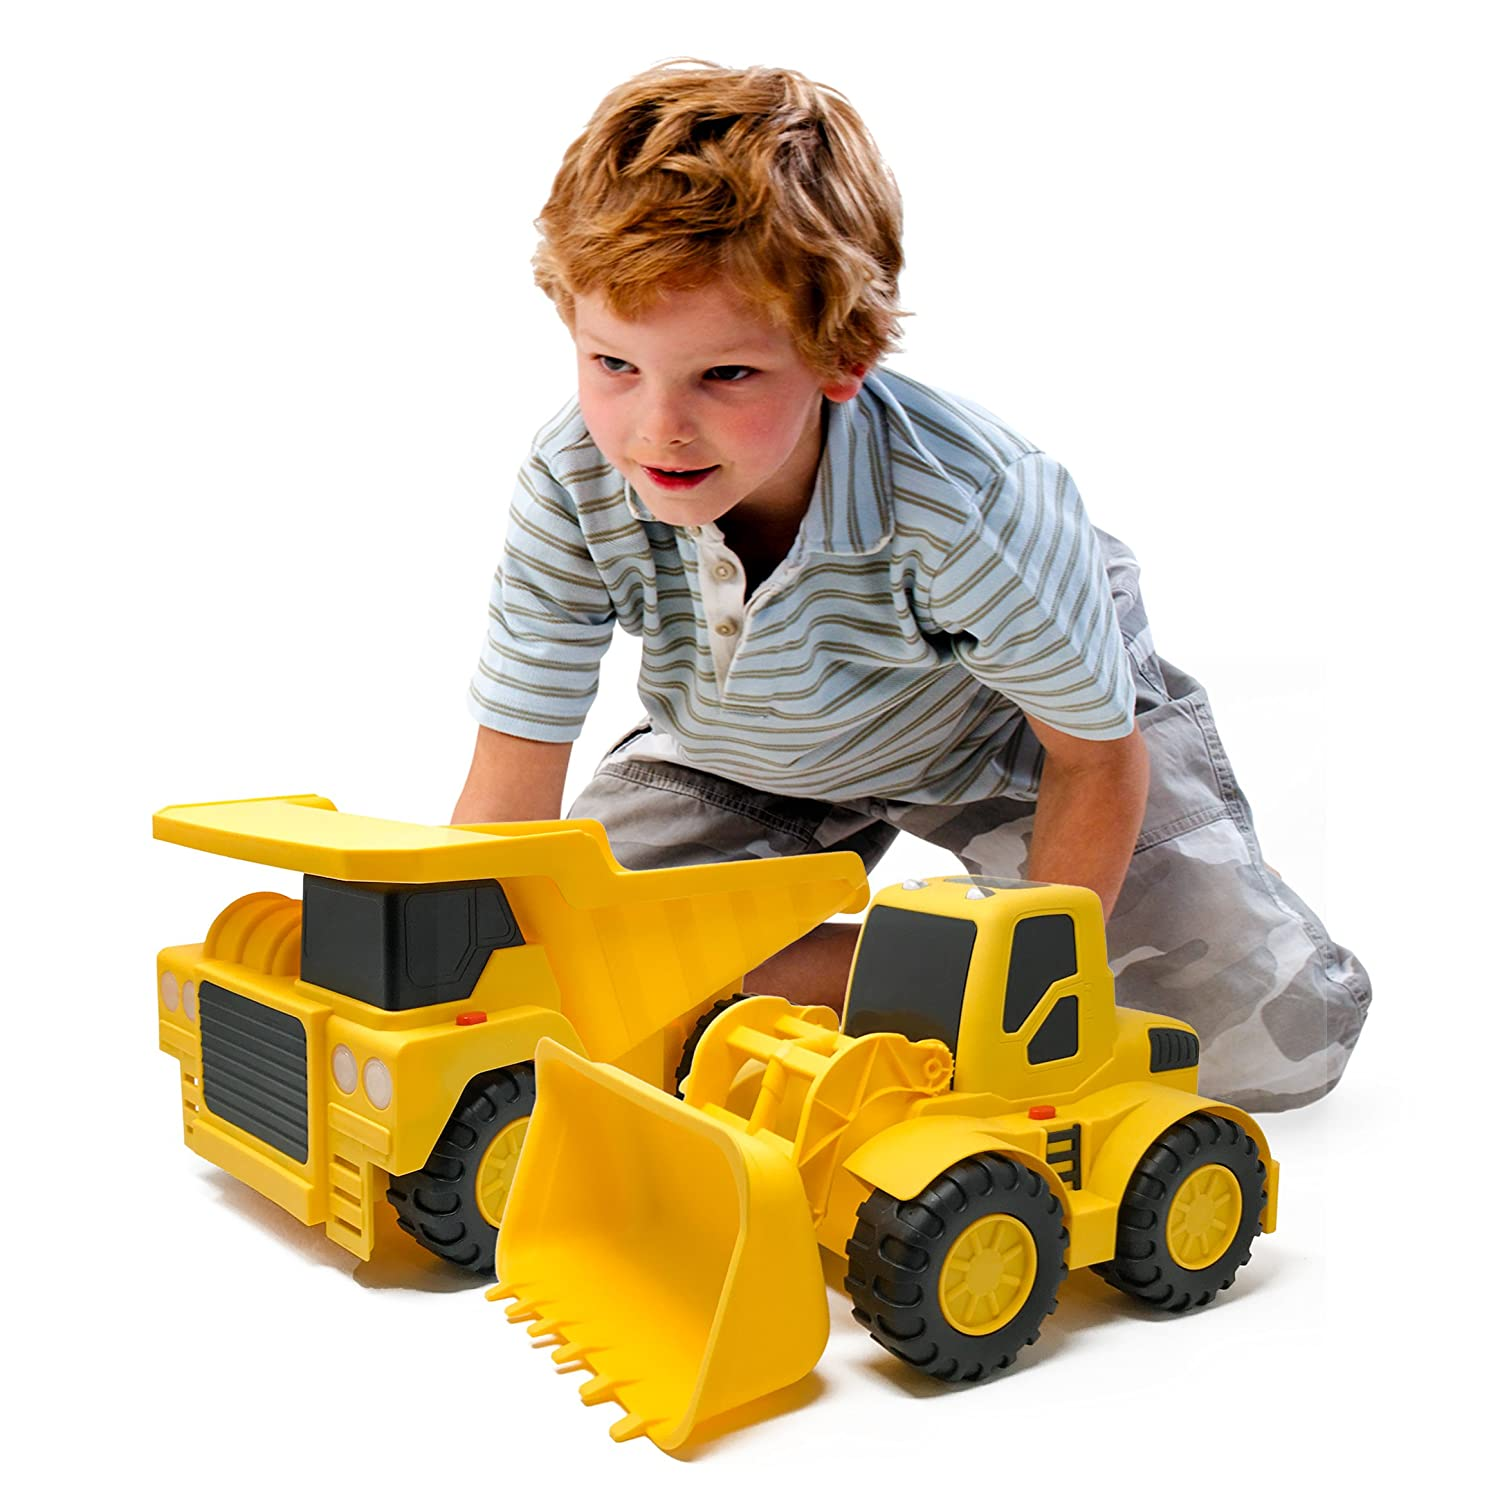 """Boley 2-Piece 18"""" Construction Vehicles - Dump Truck and Bulldozer Construction Toys - Button-Activated Light & Sound Construction Trucks, Perfect Truck toy for Toddler Boys 43223-1575"""